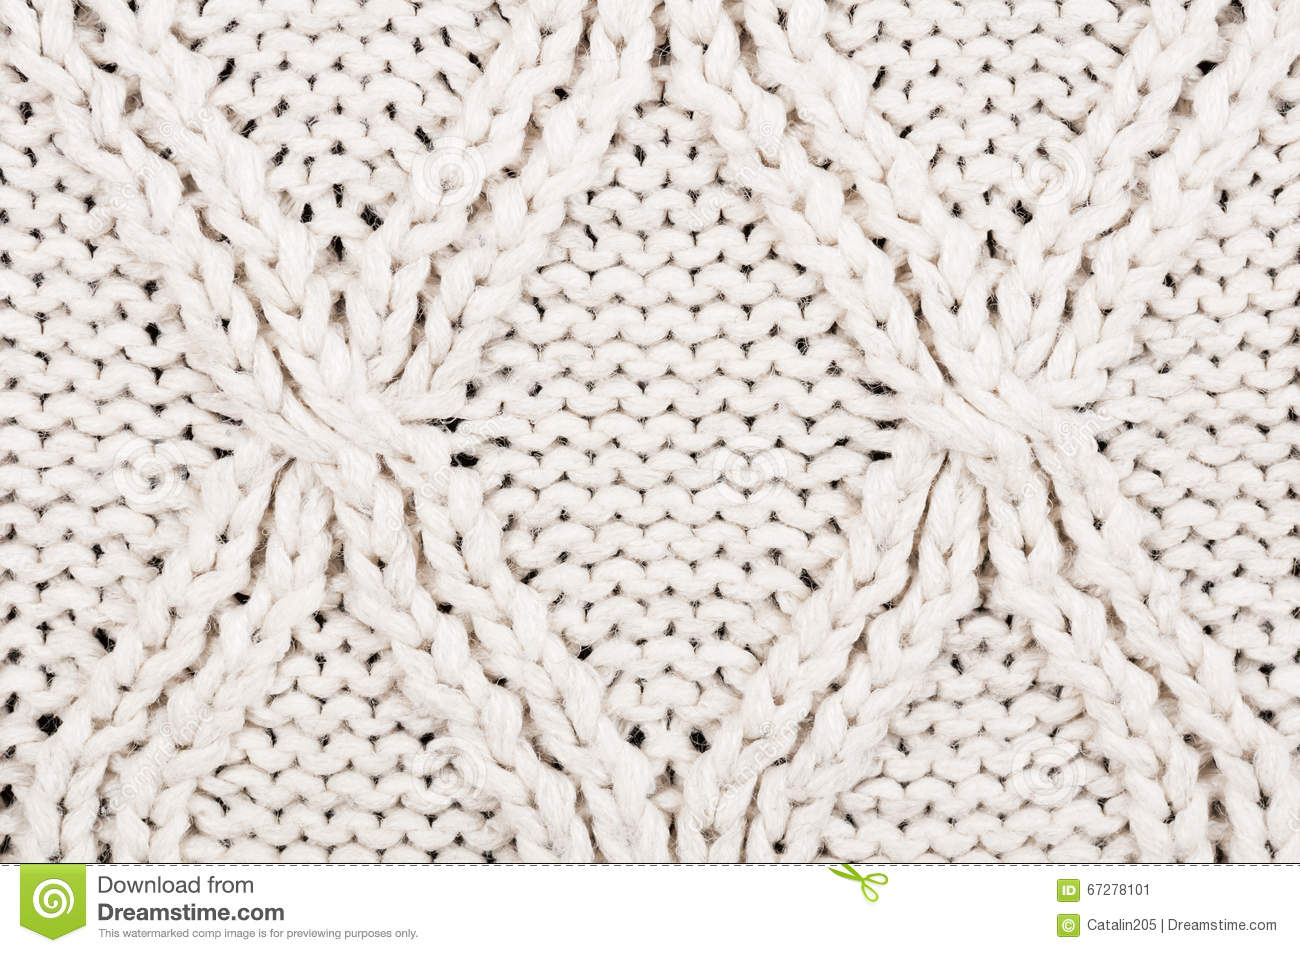 4450ed9d7816 Close-up of beige knitted winter sweater with pattern as textured material  concept